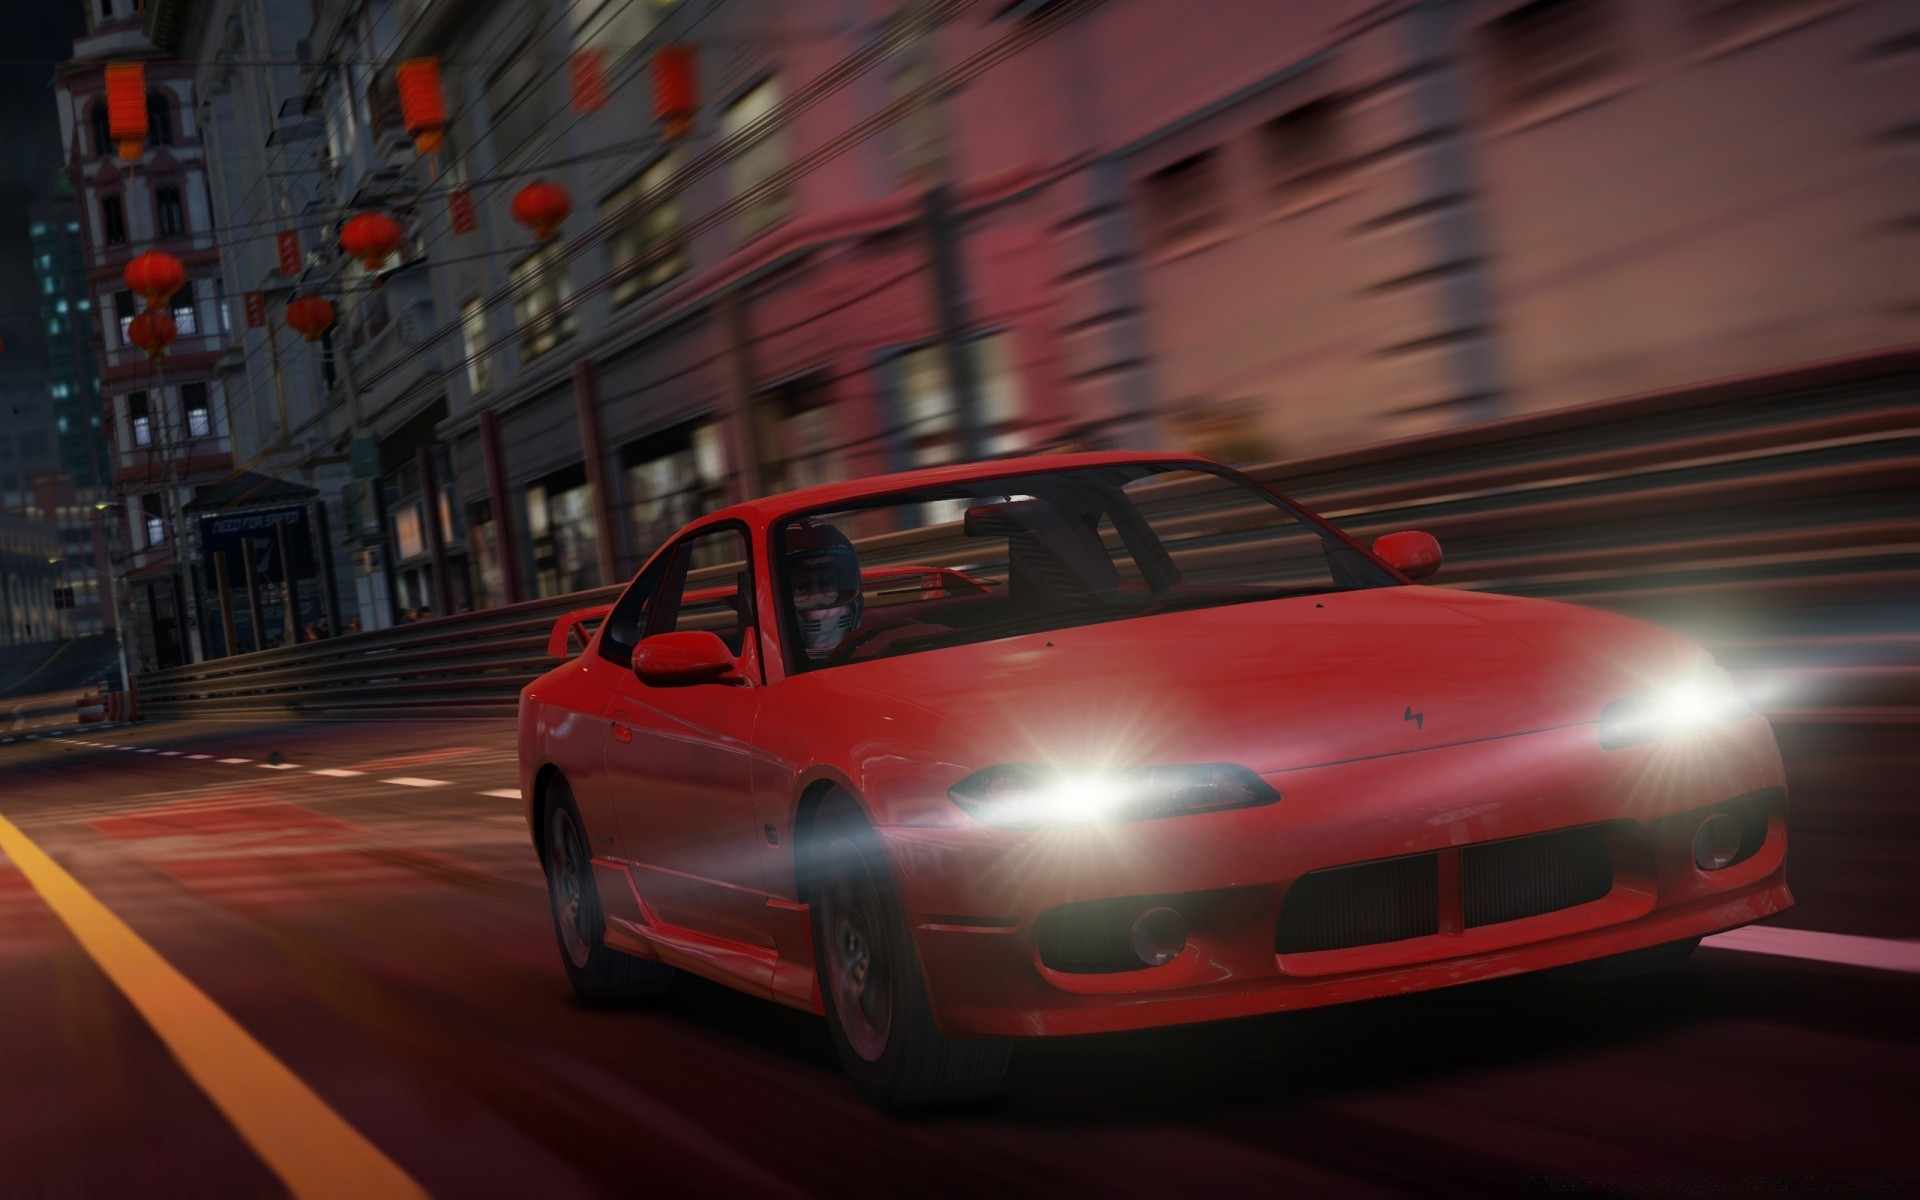 NFS Shift 2 Unleashed, Nissan Silvia s15 Spec R